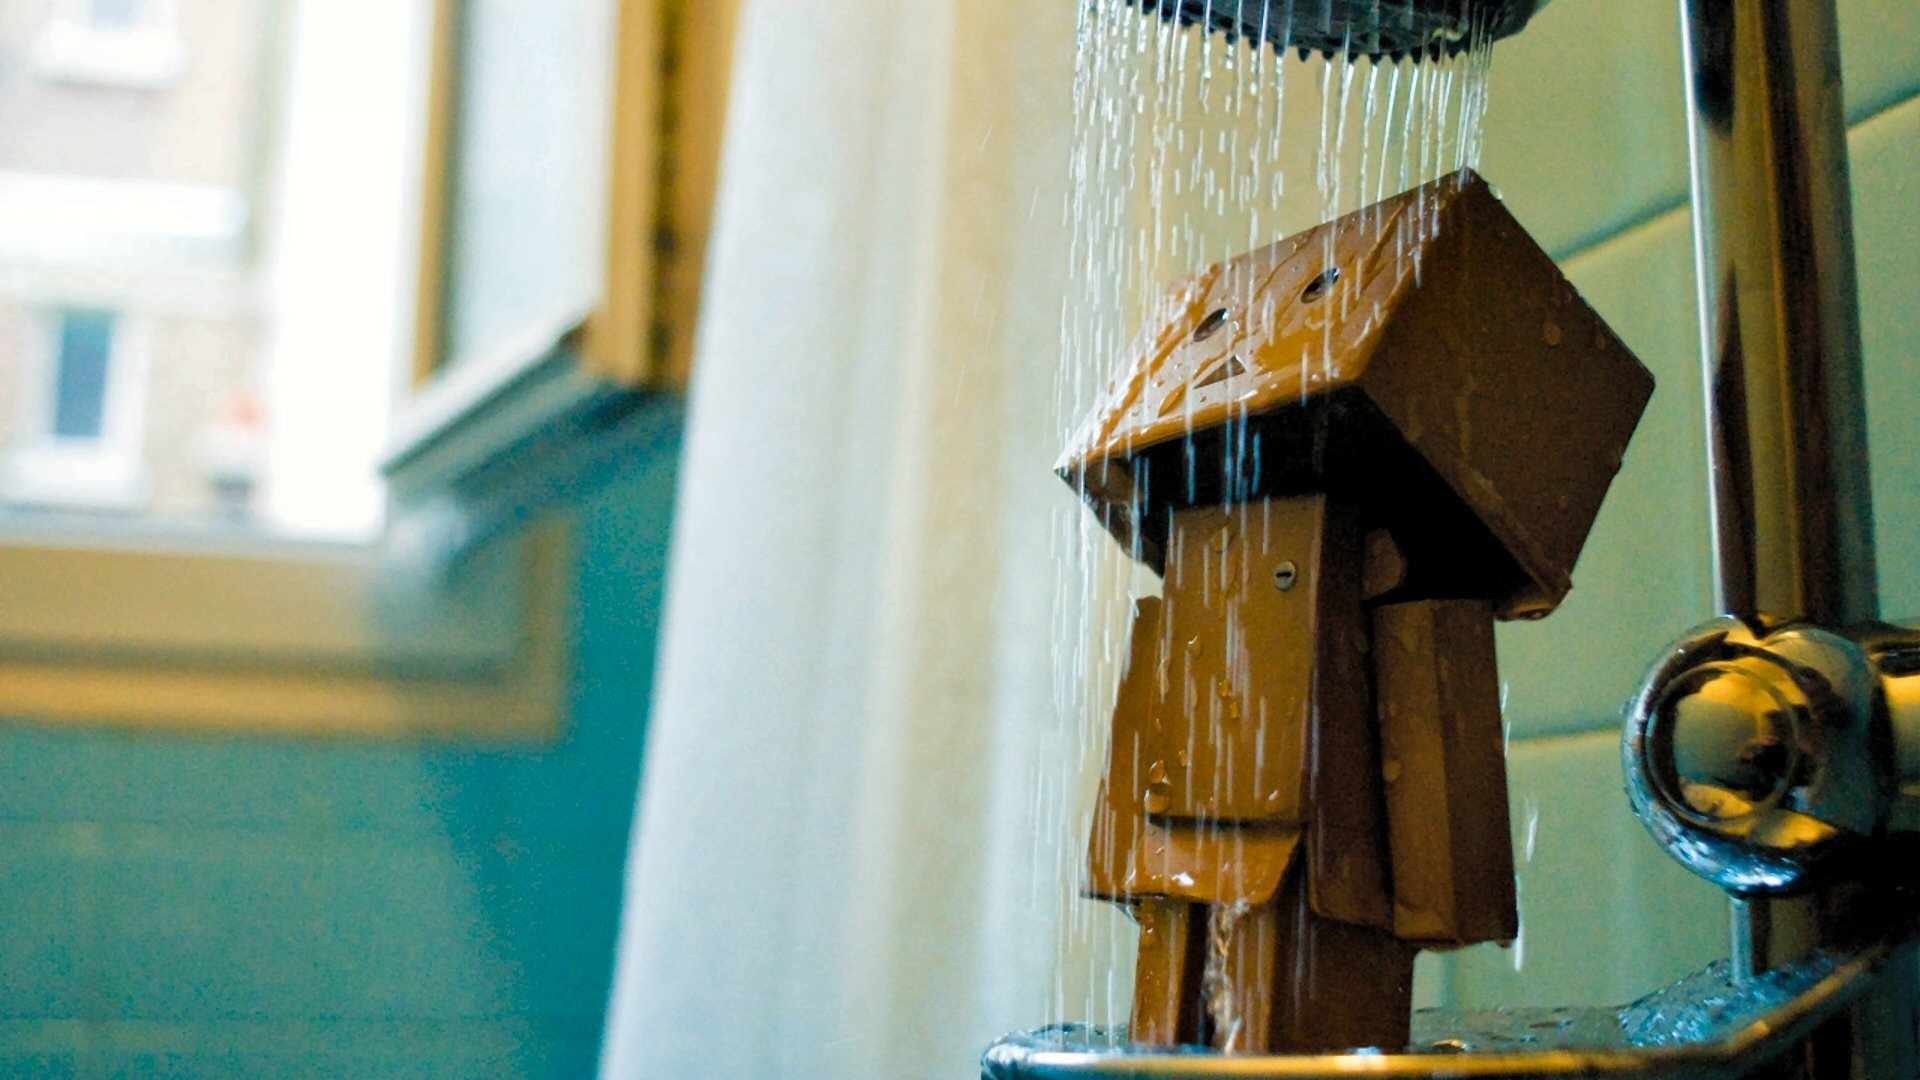 96 Danbo HD Wallpapers Backgrounds Wallpaper Abyss